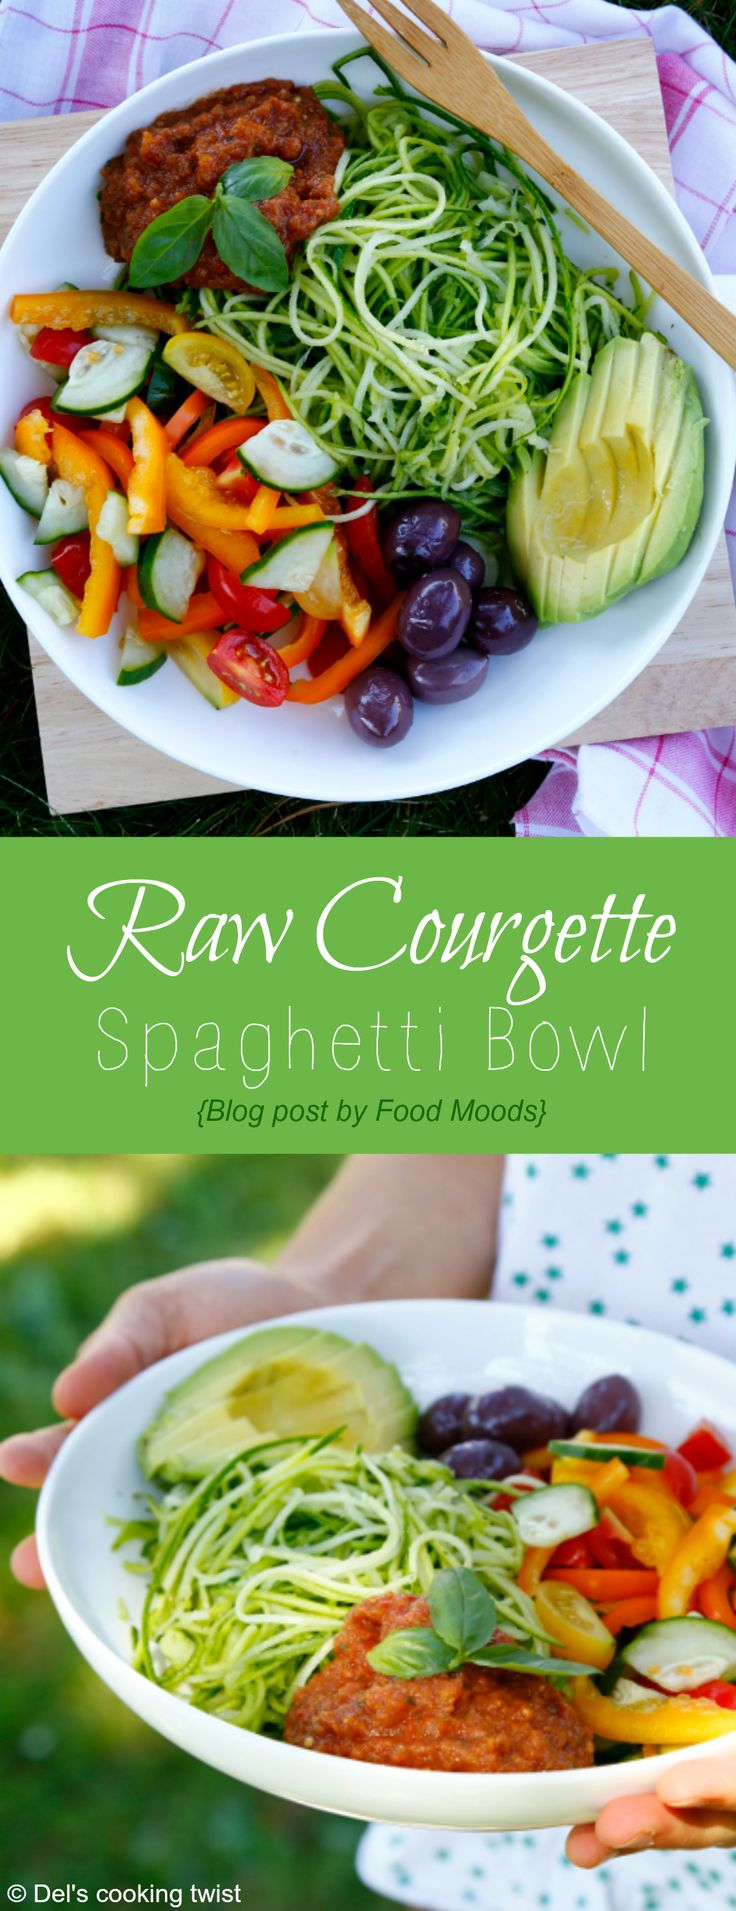 Heakthy Raw Courgette Spaghetti Bowl | Del's cooking twist